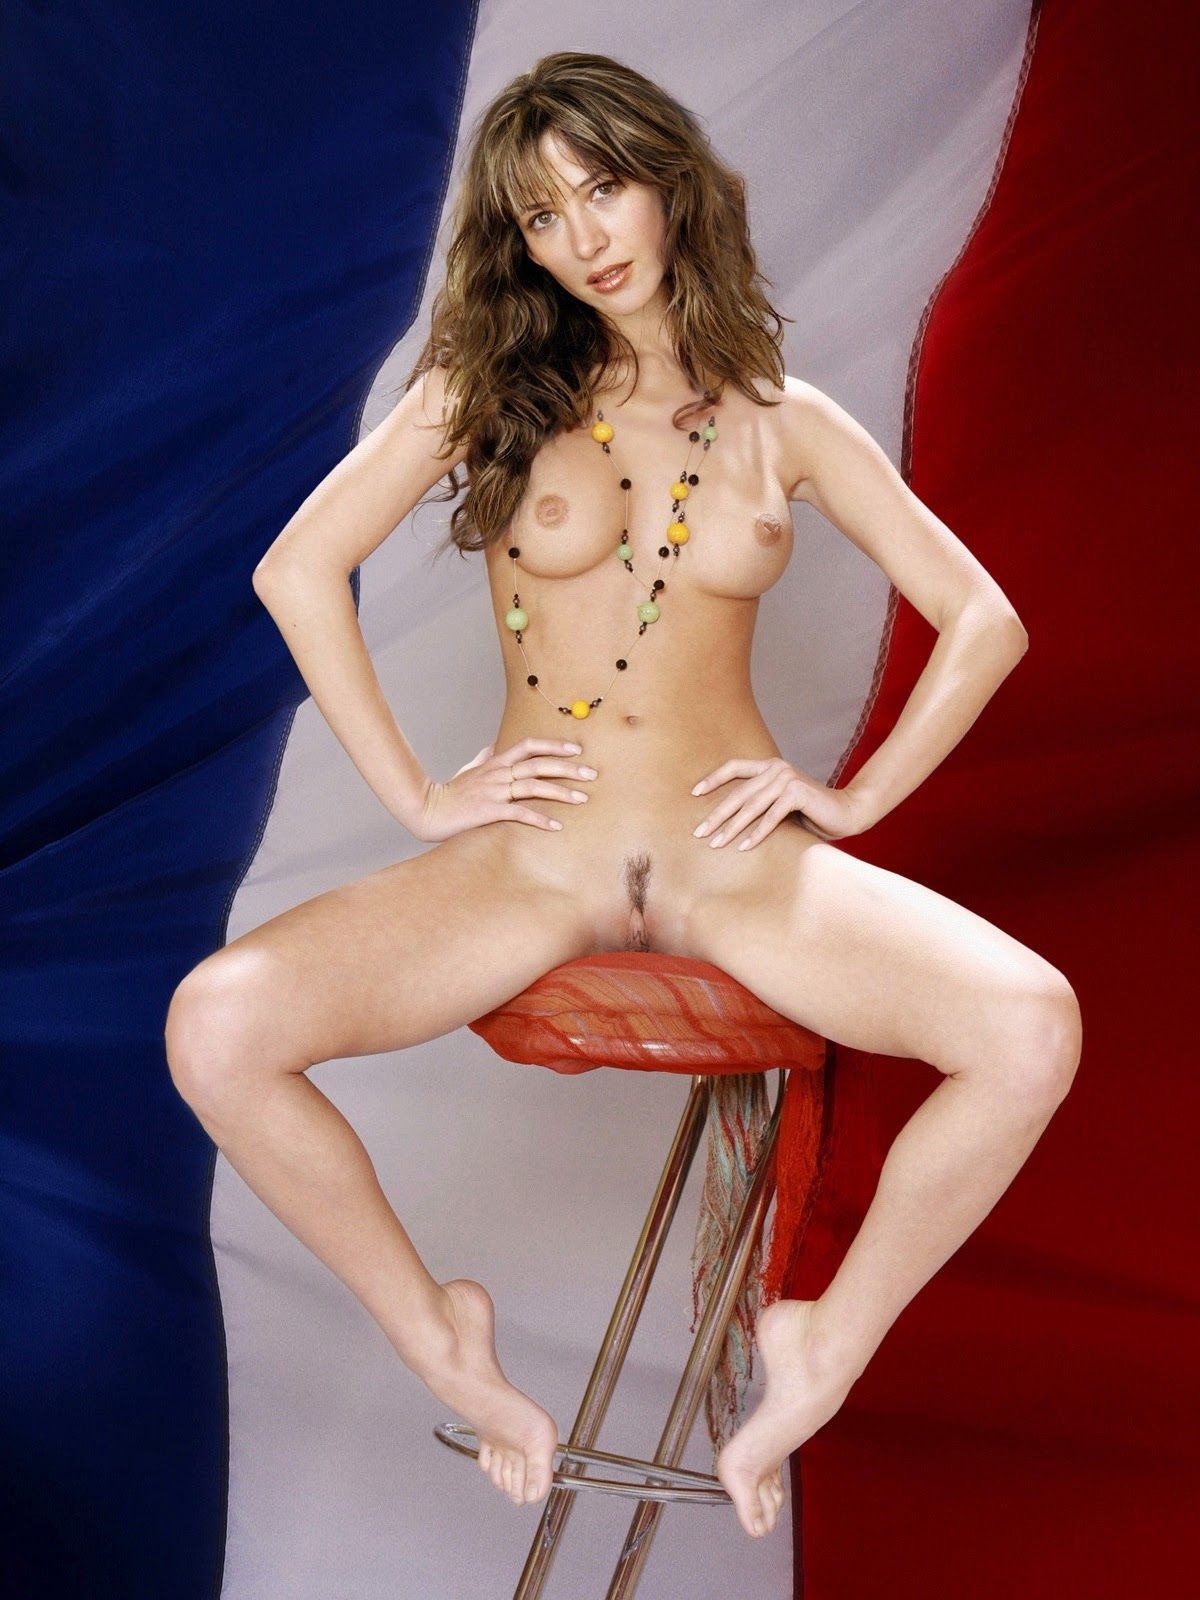 from Kameron sophie marceau nude photos